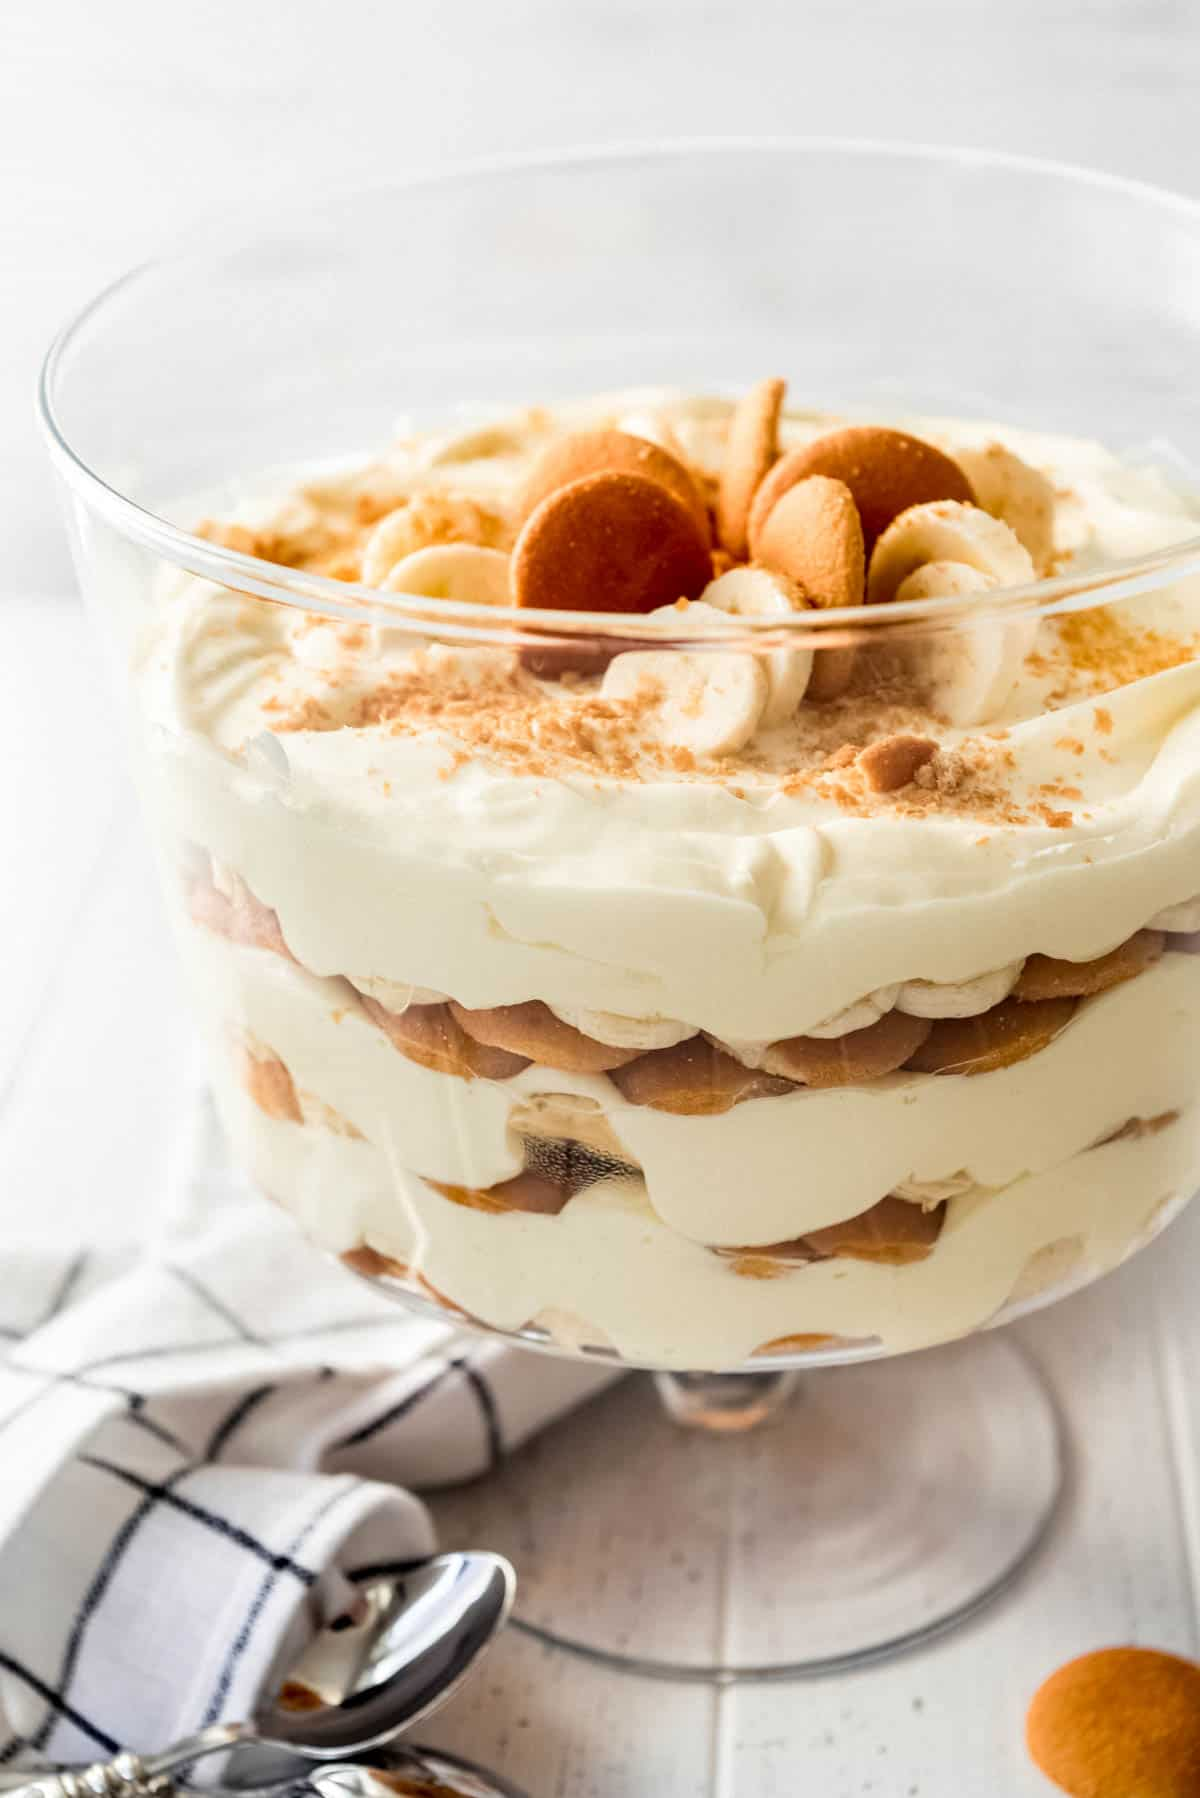 Magnolia Bakery Banana Pudding in trifle dish topped with Nilla wafers and bananas